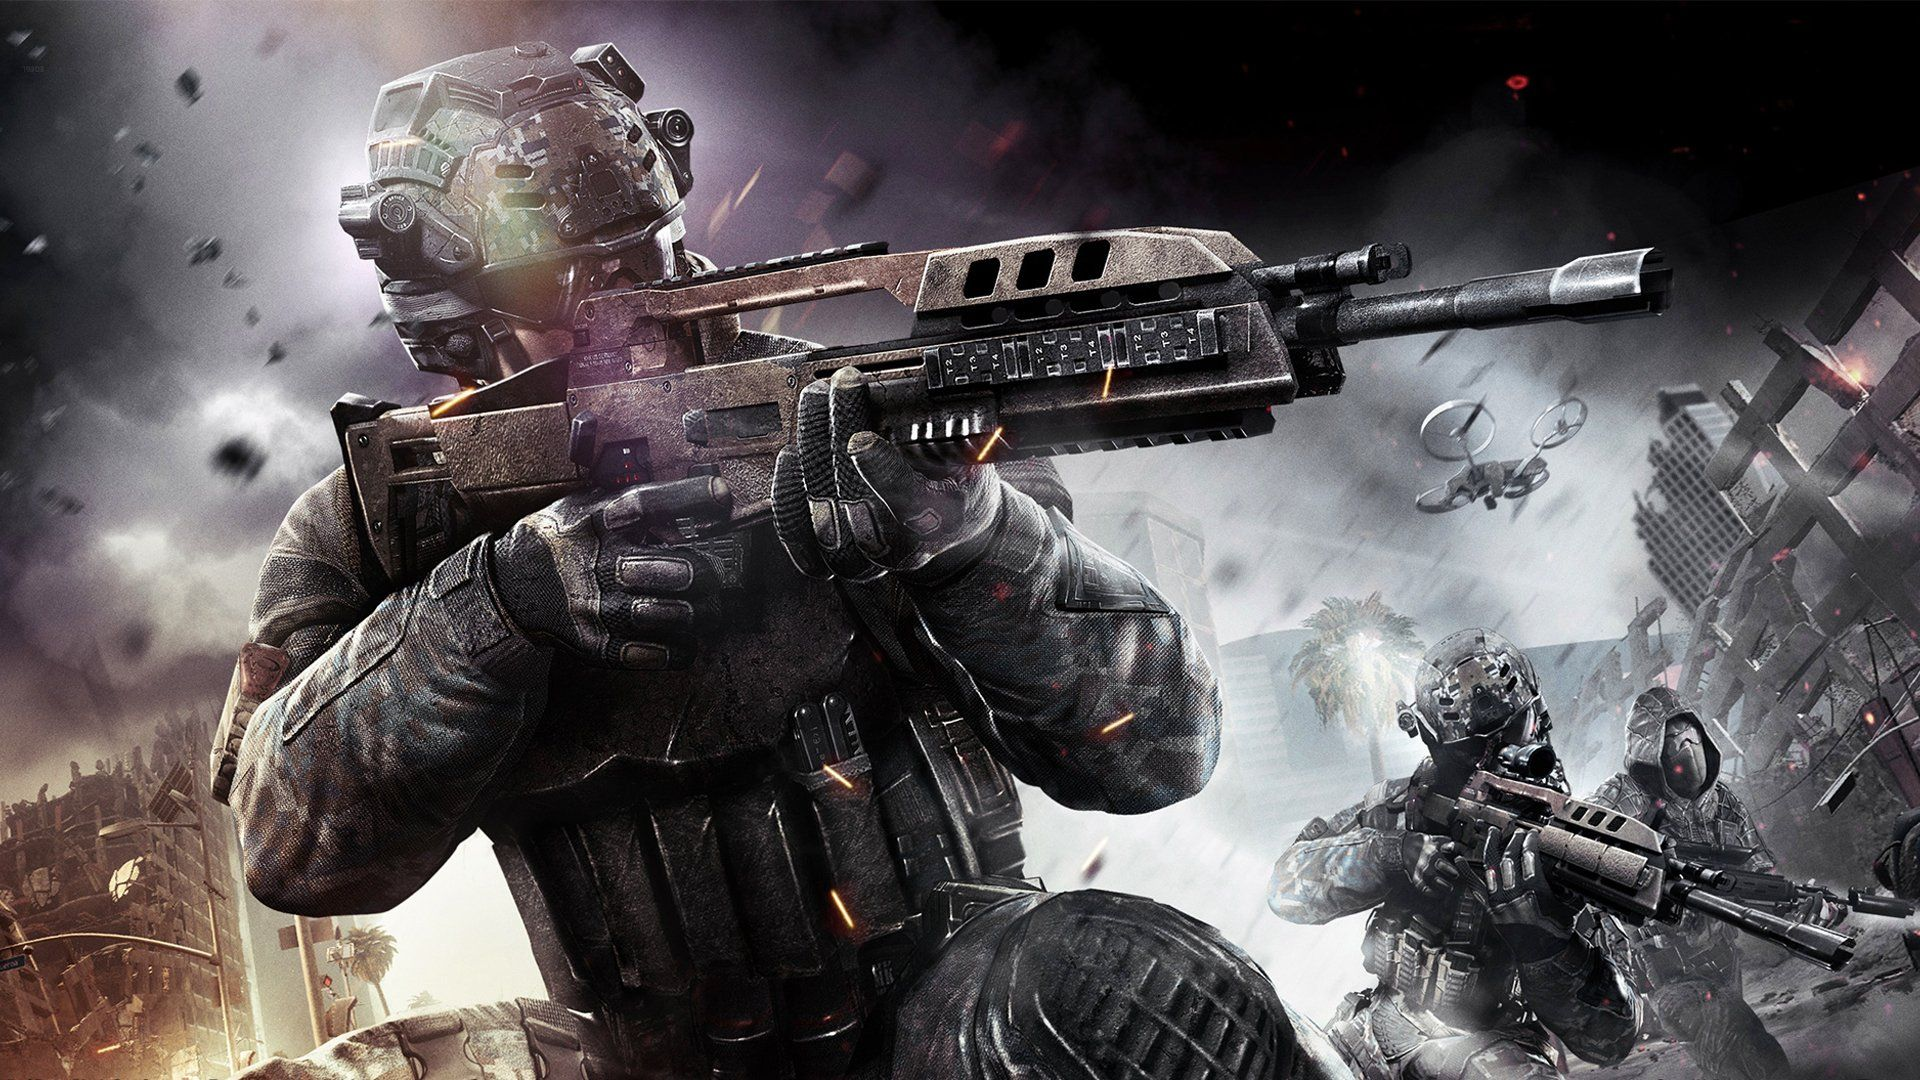 1920x1080 Call of Duty HD Wallpaper | Background Image | 1920x1080 | ID:328192 ...